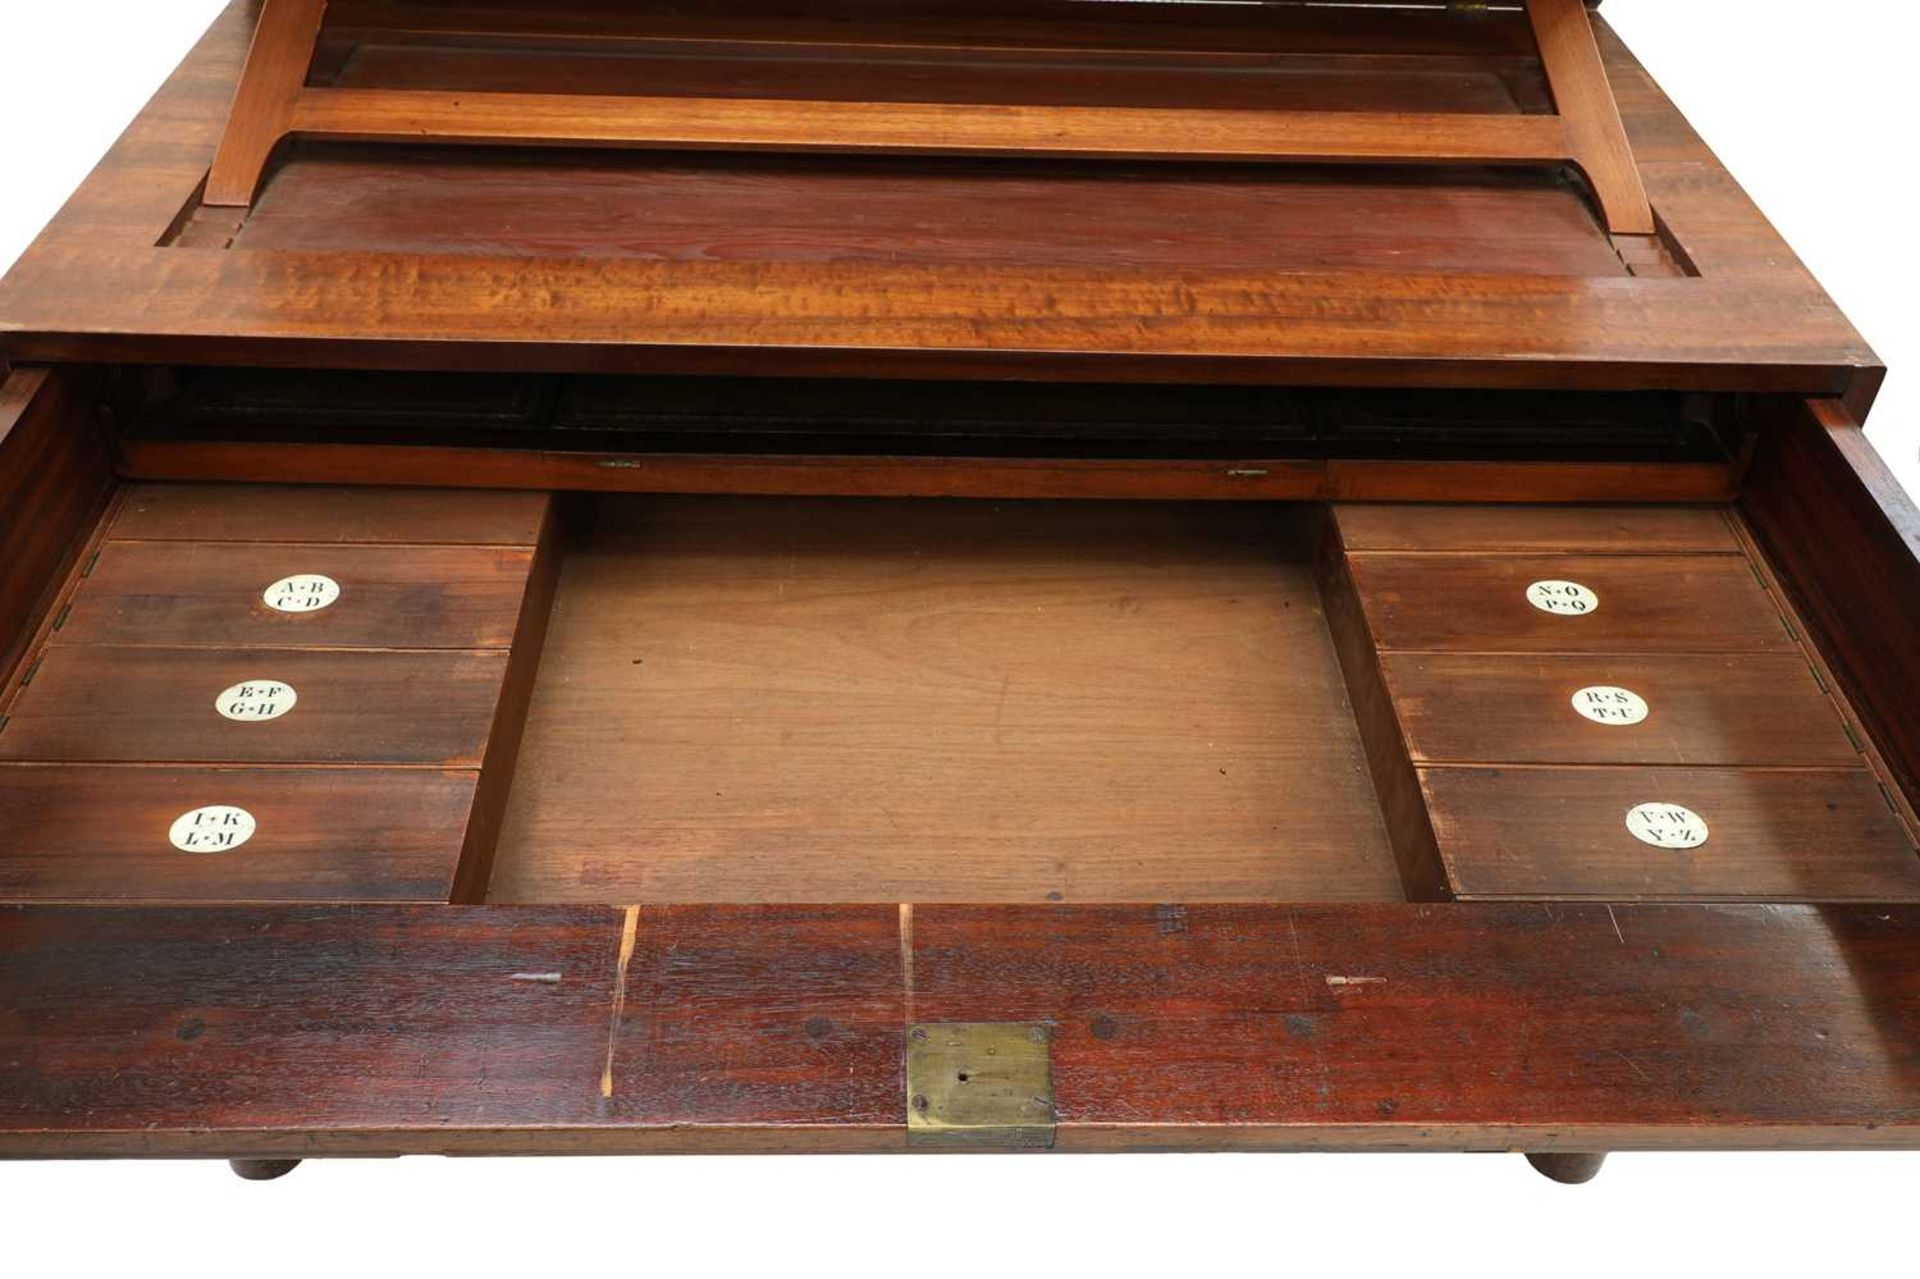 A George III mahogany architect's desk/secretaire, - Image 8 of 30